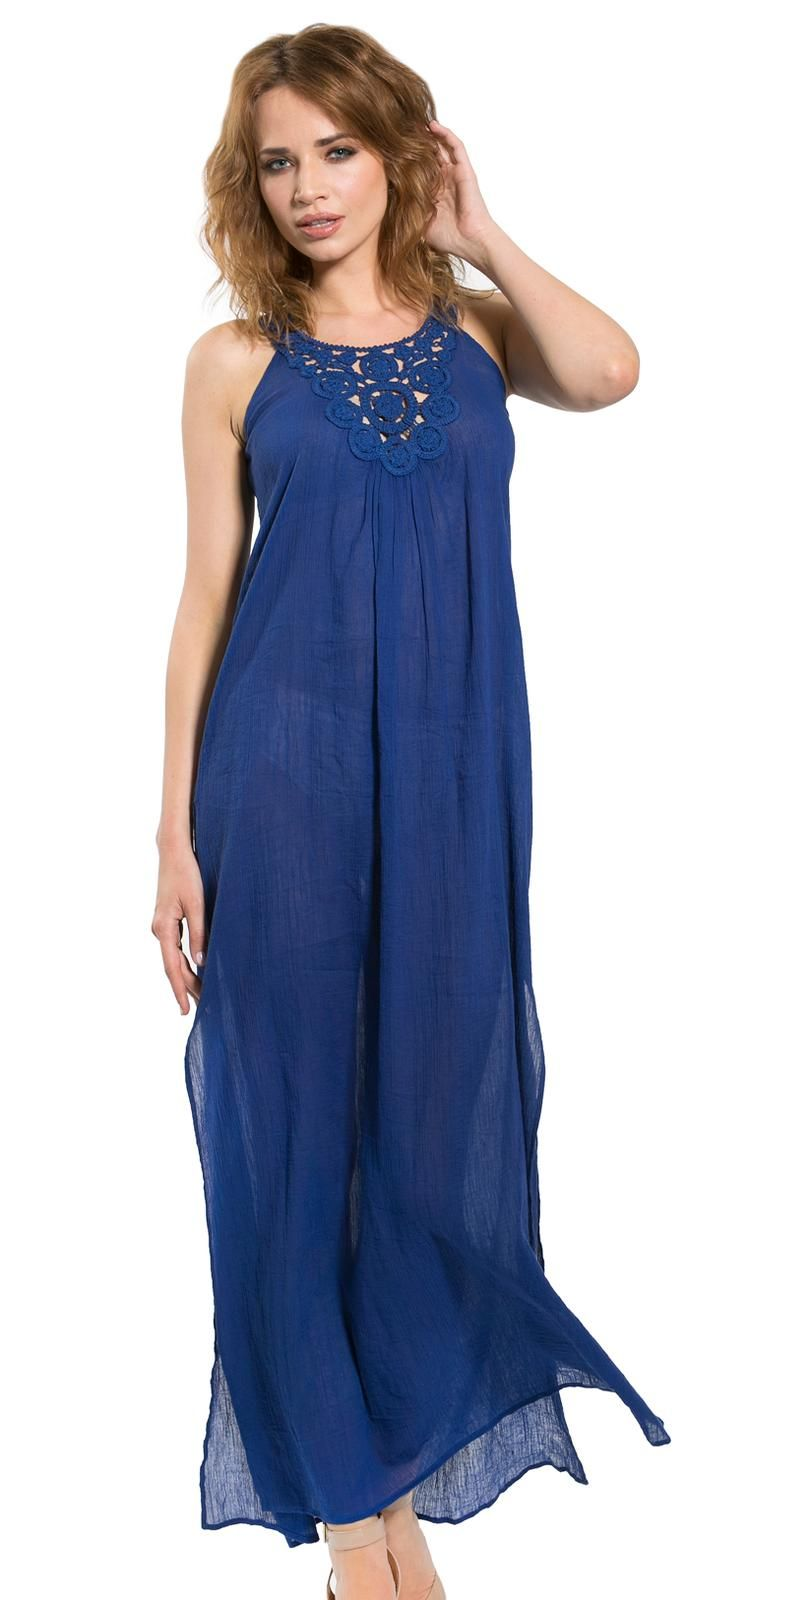 Pia rossini pepita long blue maxi dress pepitamaxidress